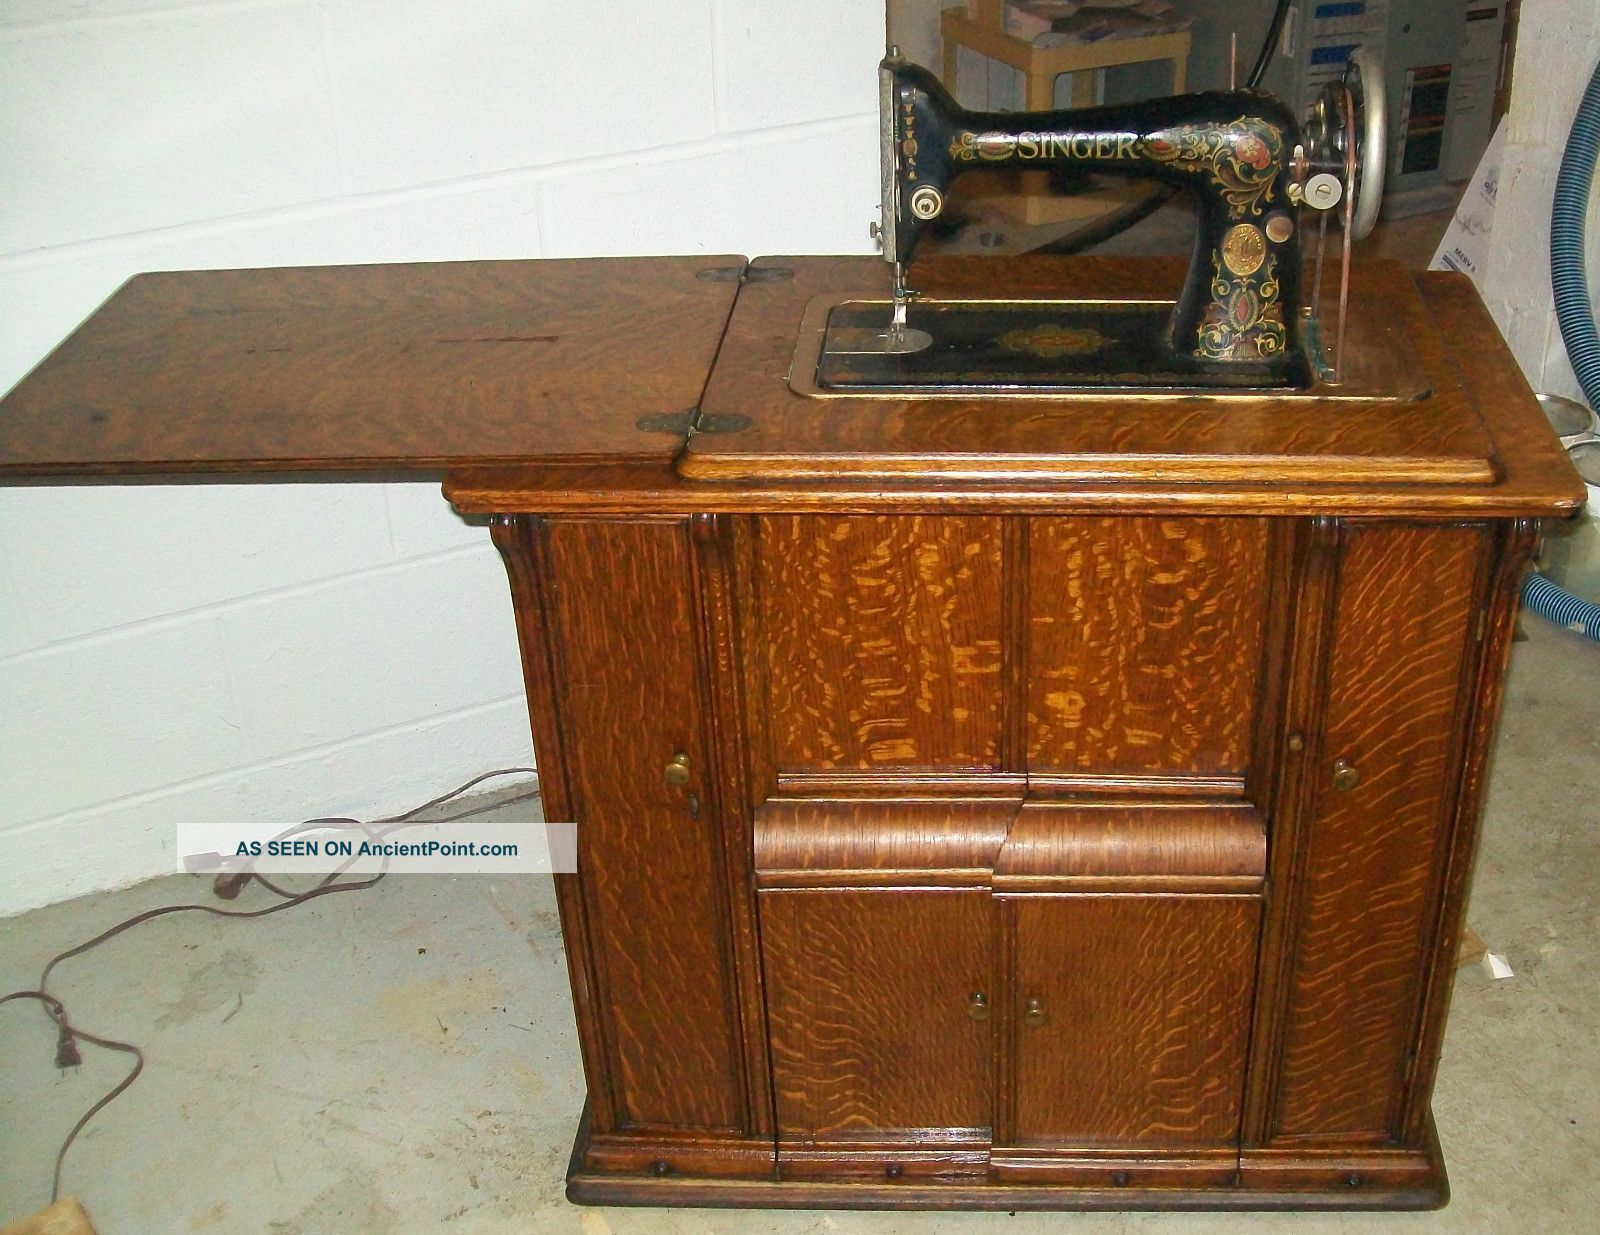 Amazing 1920 Singer Sewing Machine And Parlor Cabinet Model 66 Home Interior And Landscaping Transignezvosmurscom